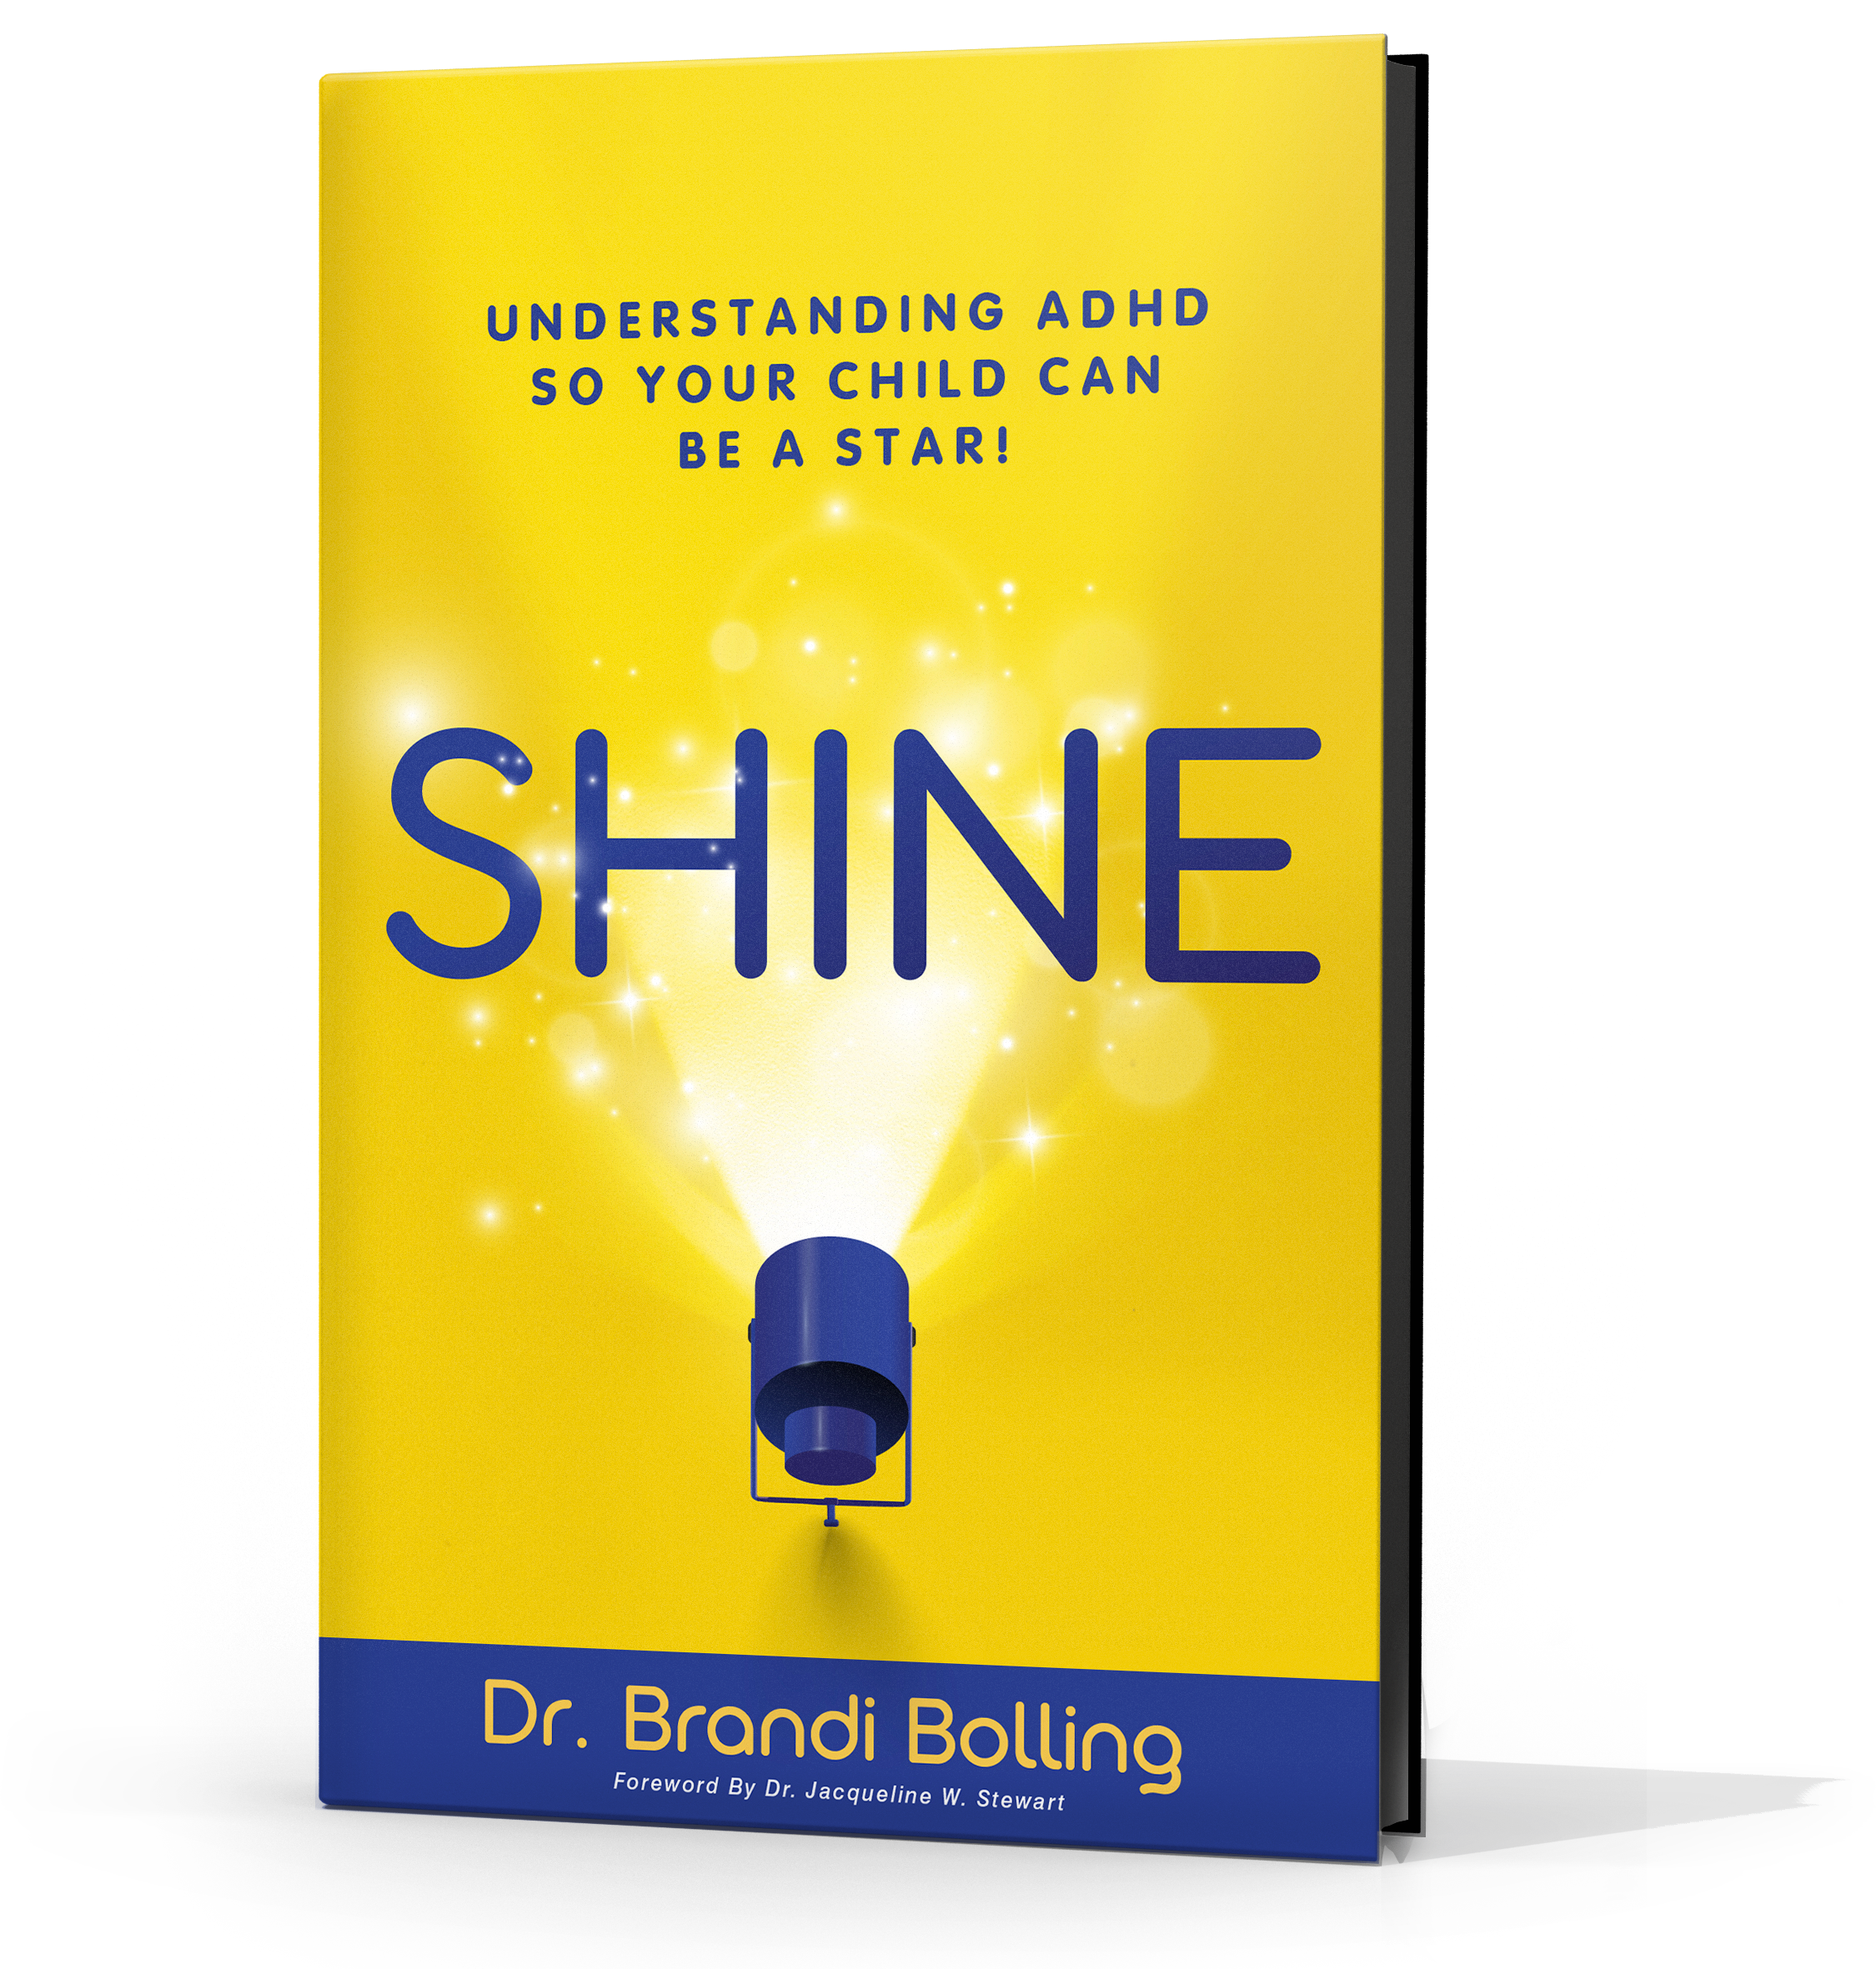 Psychiatrist and Bestselling Author Releases Book Aimed at Empowering Parents of Children with ADHD